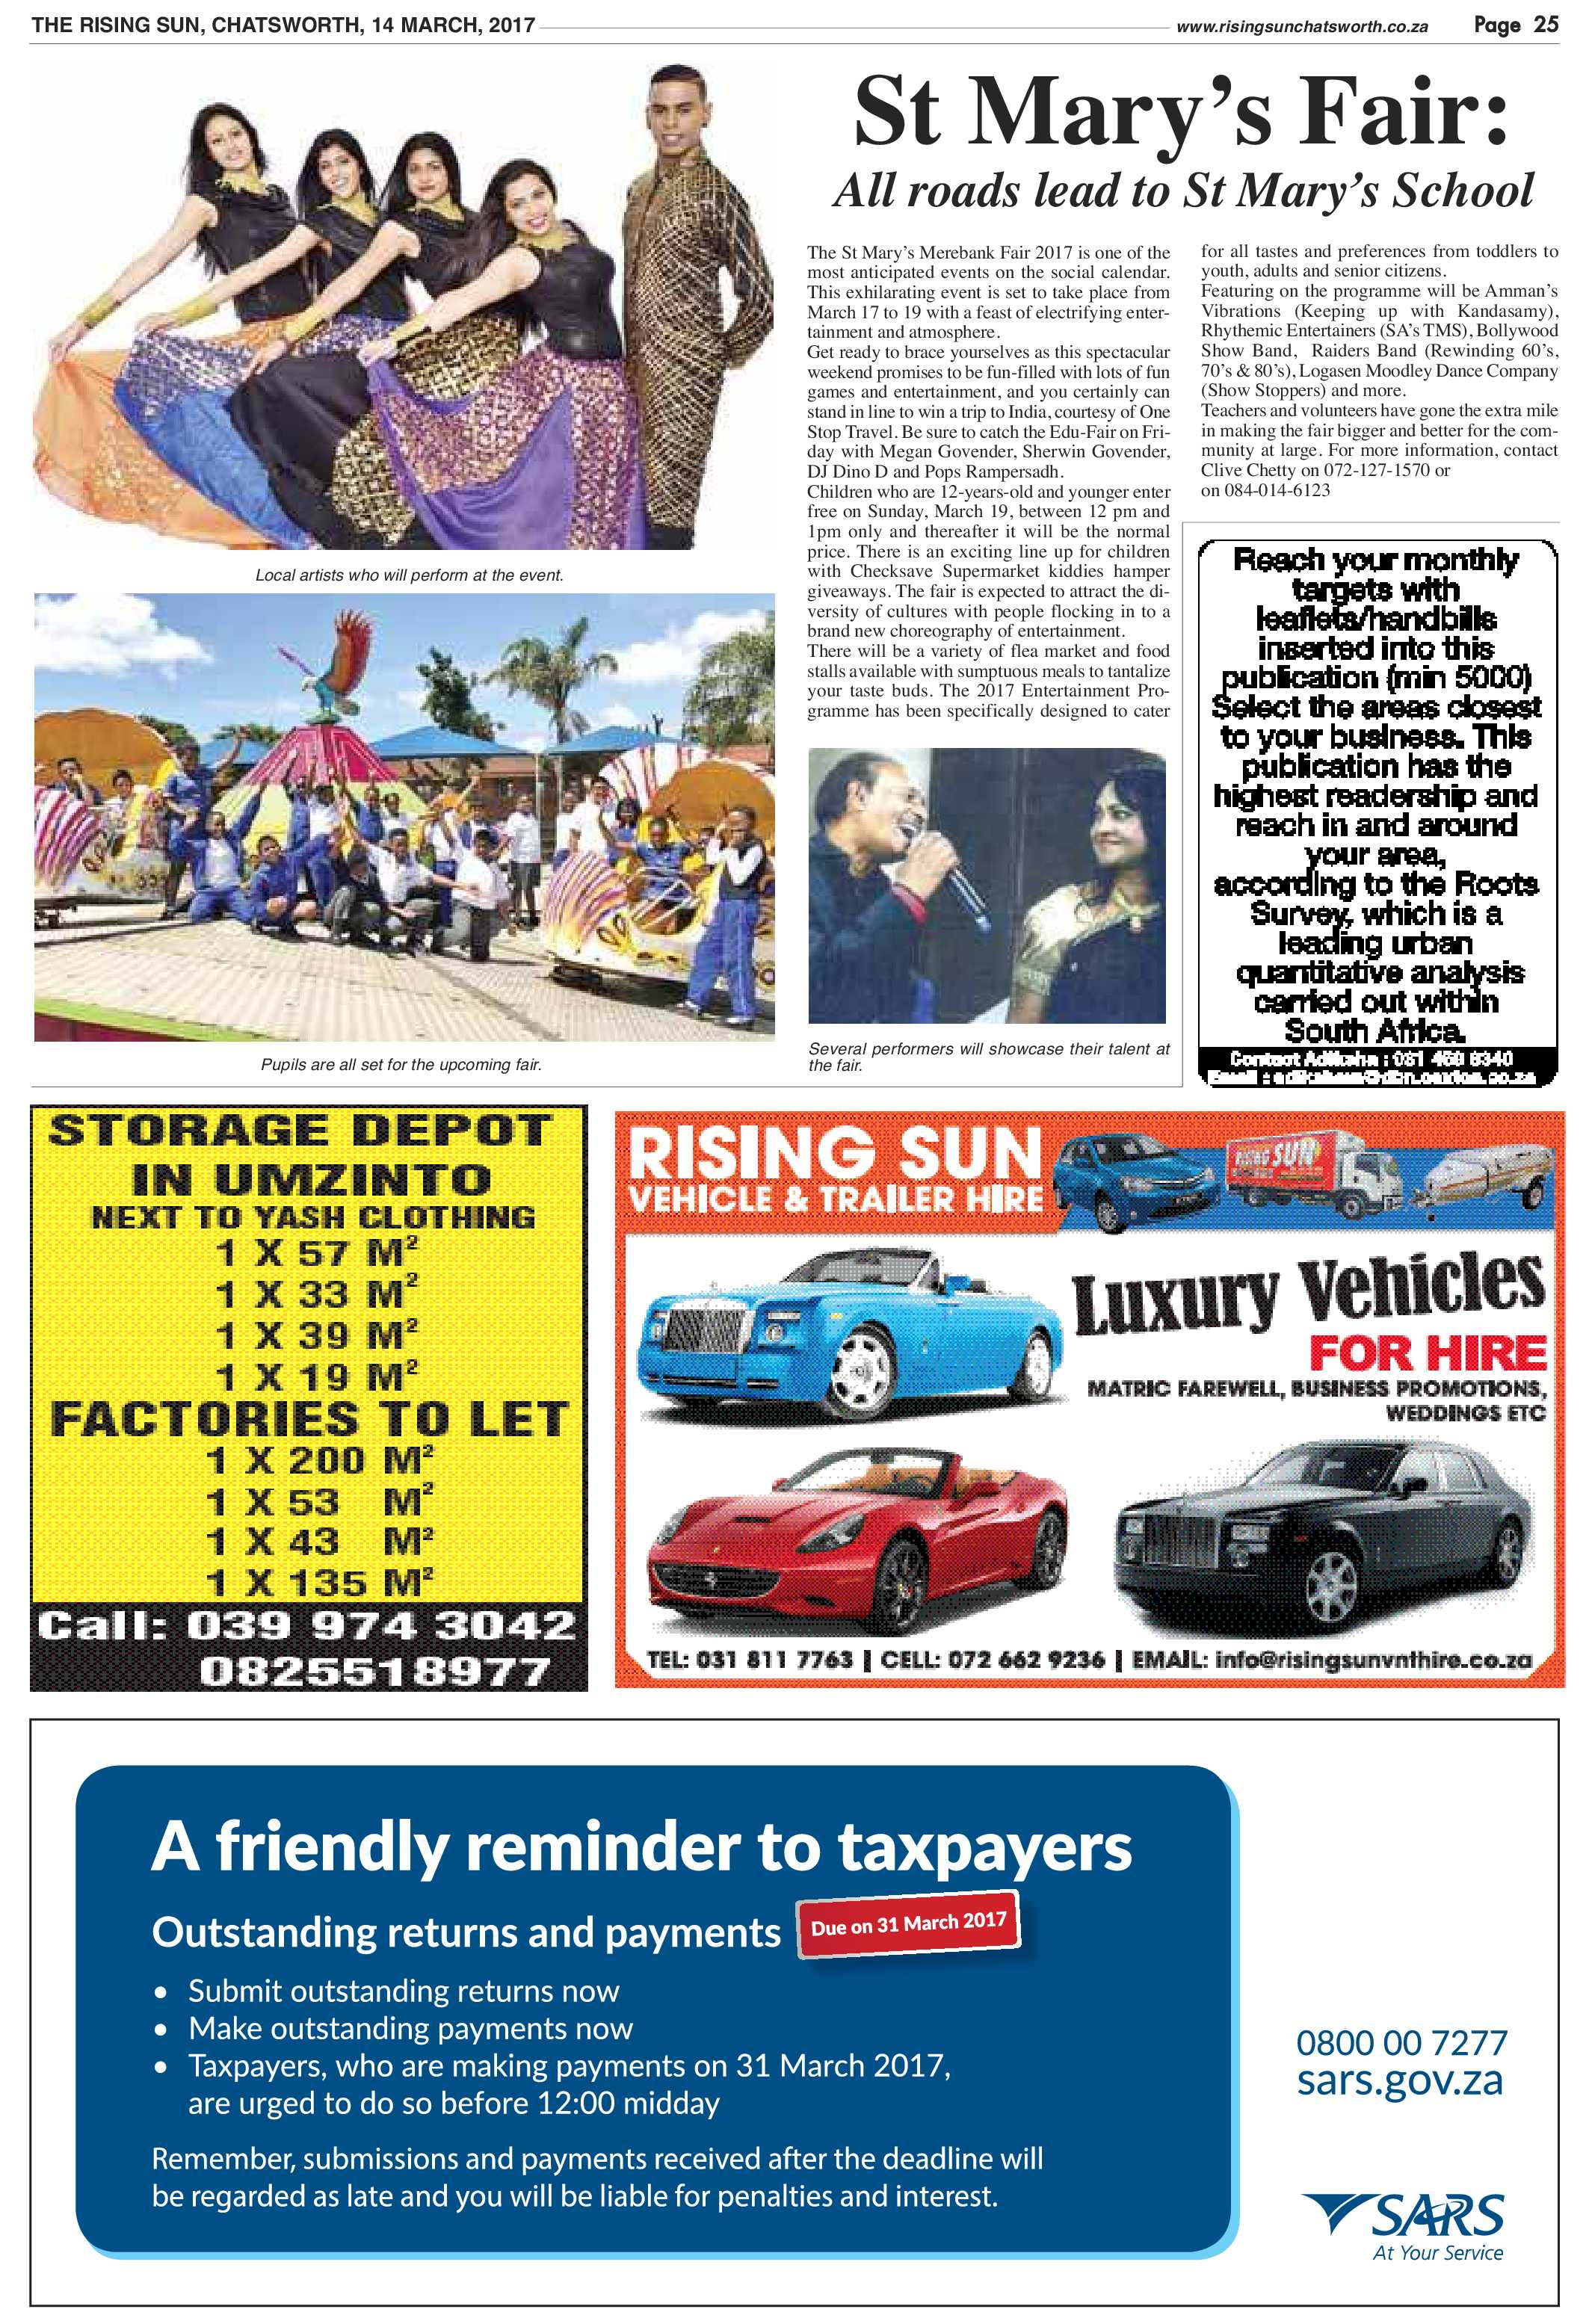 chatsworth-police-slammed-epapers-page-29